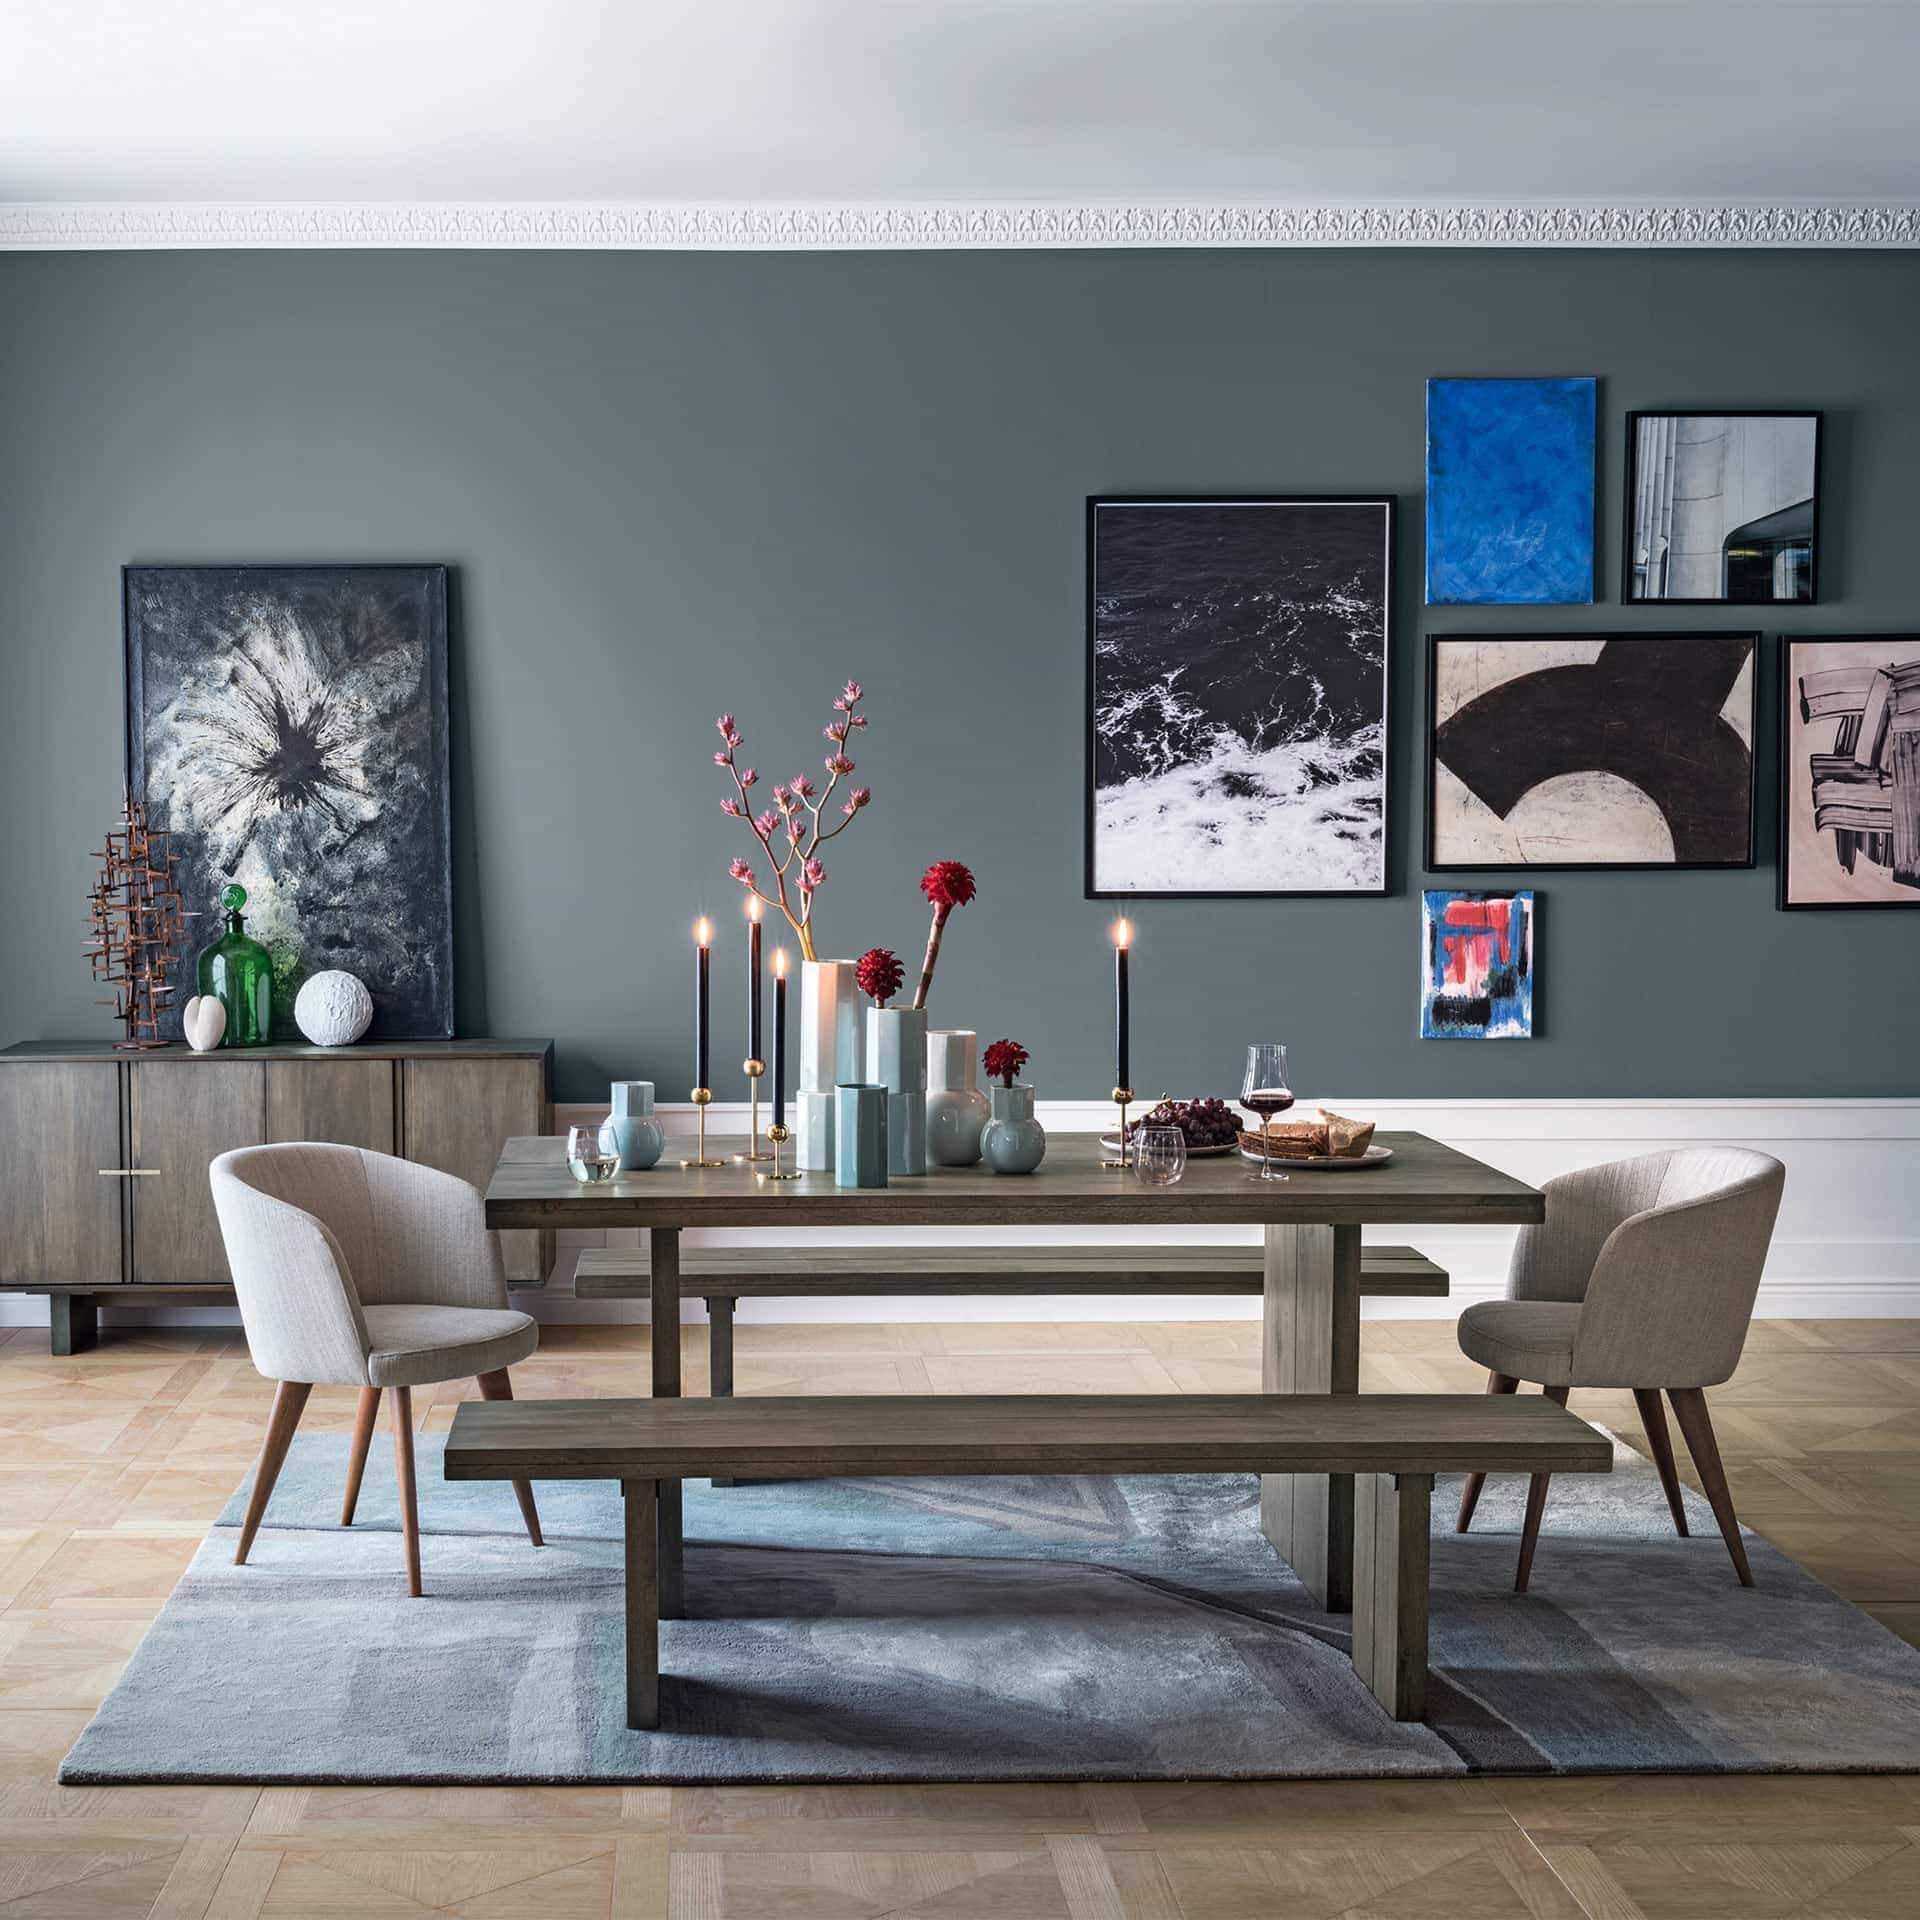 West Elm Dining Room With Grey Feature Wall And Gallery Wall With Pink  Artworks